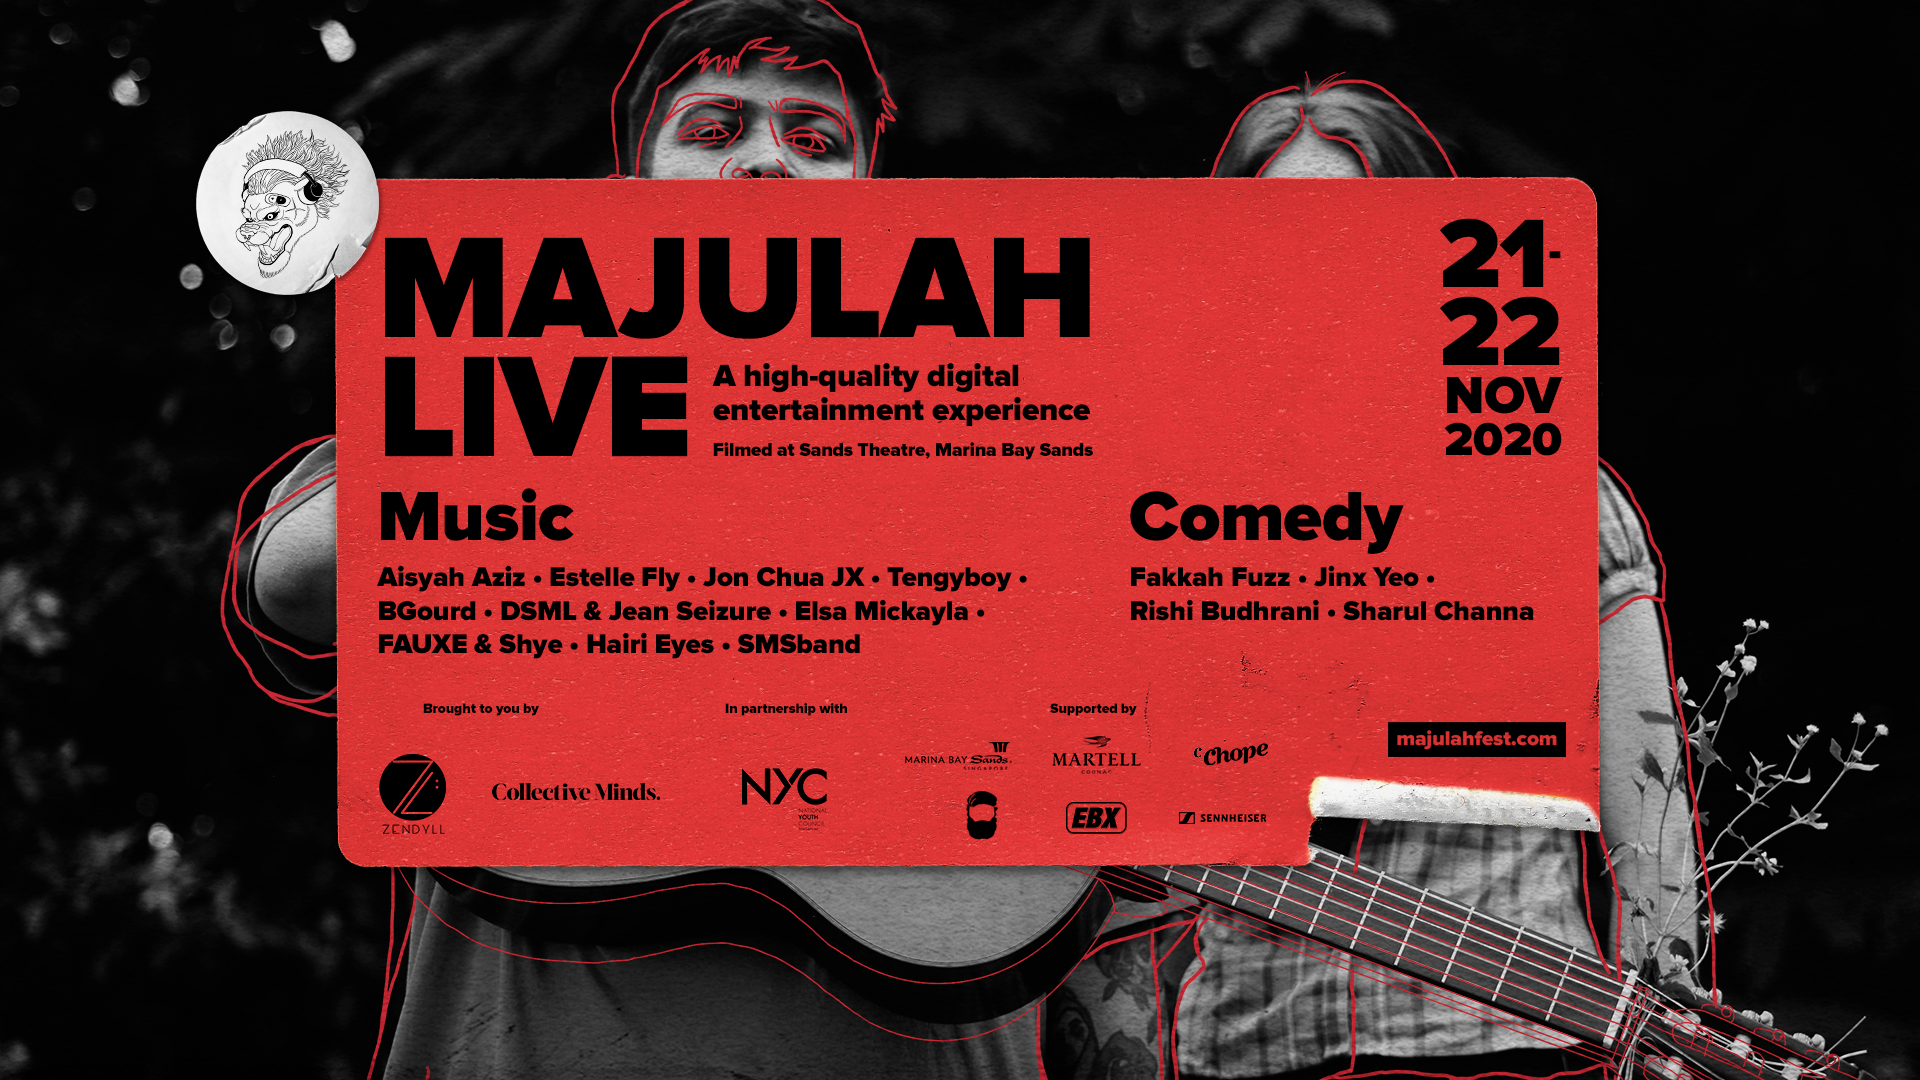 PHOTO: MAJULAH LIVE 2020